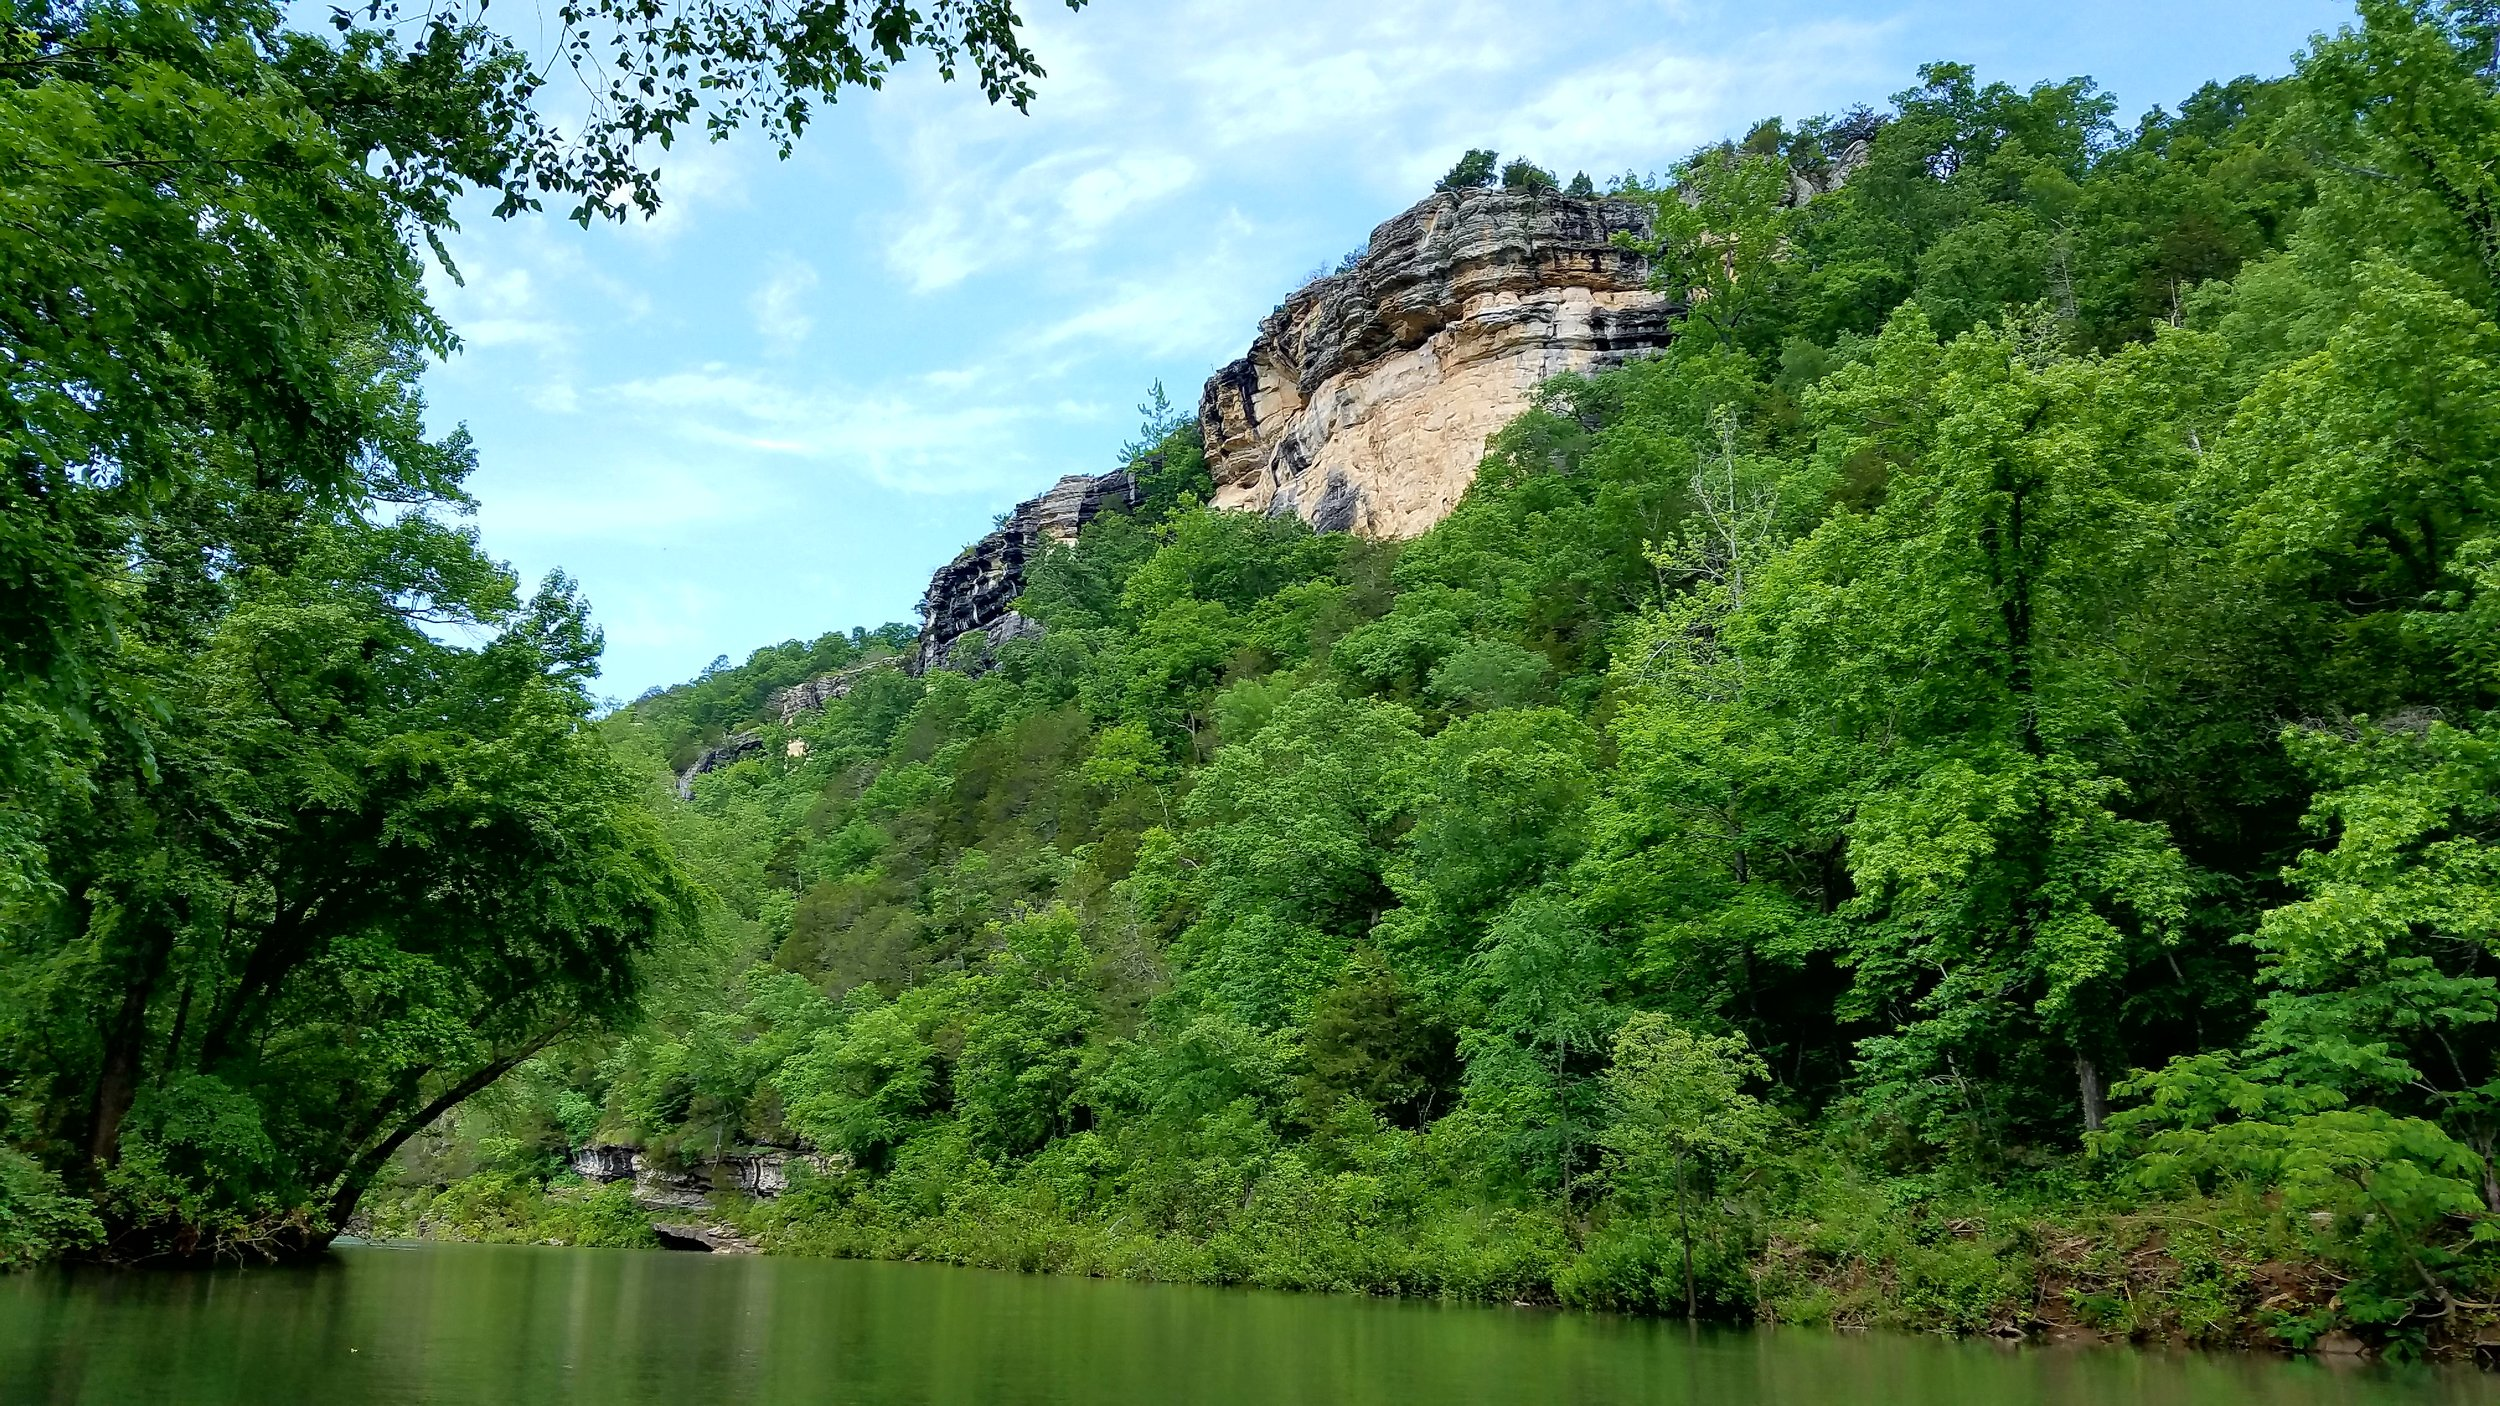 Some of the rock bluffs on the Buffalo River are over 400 feet high.